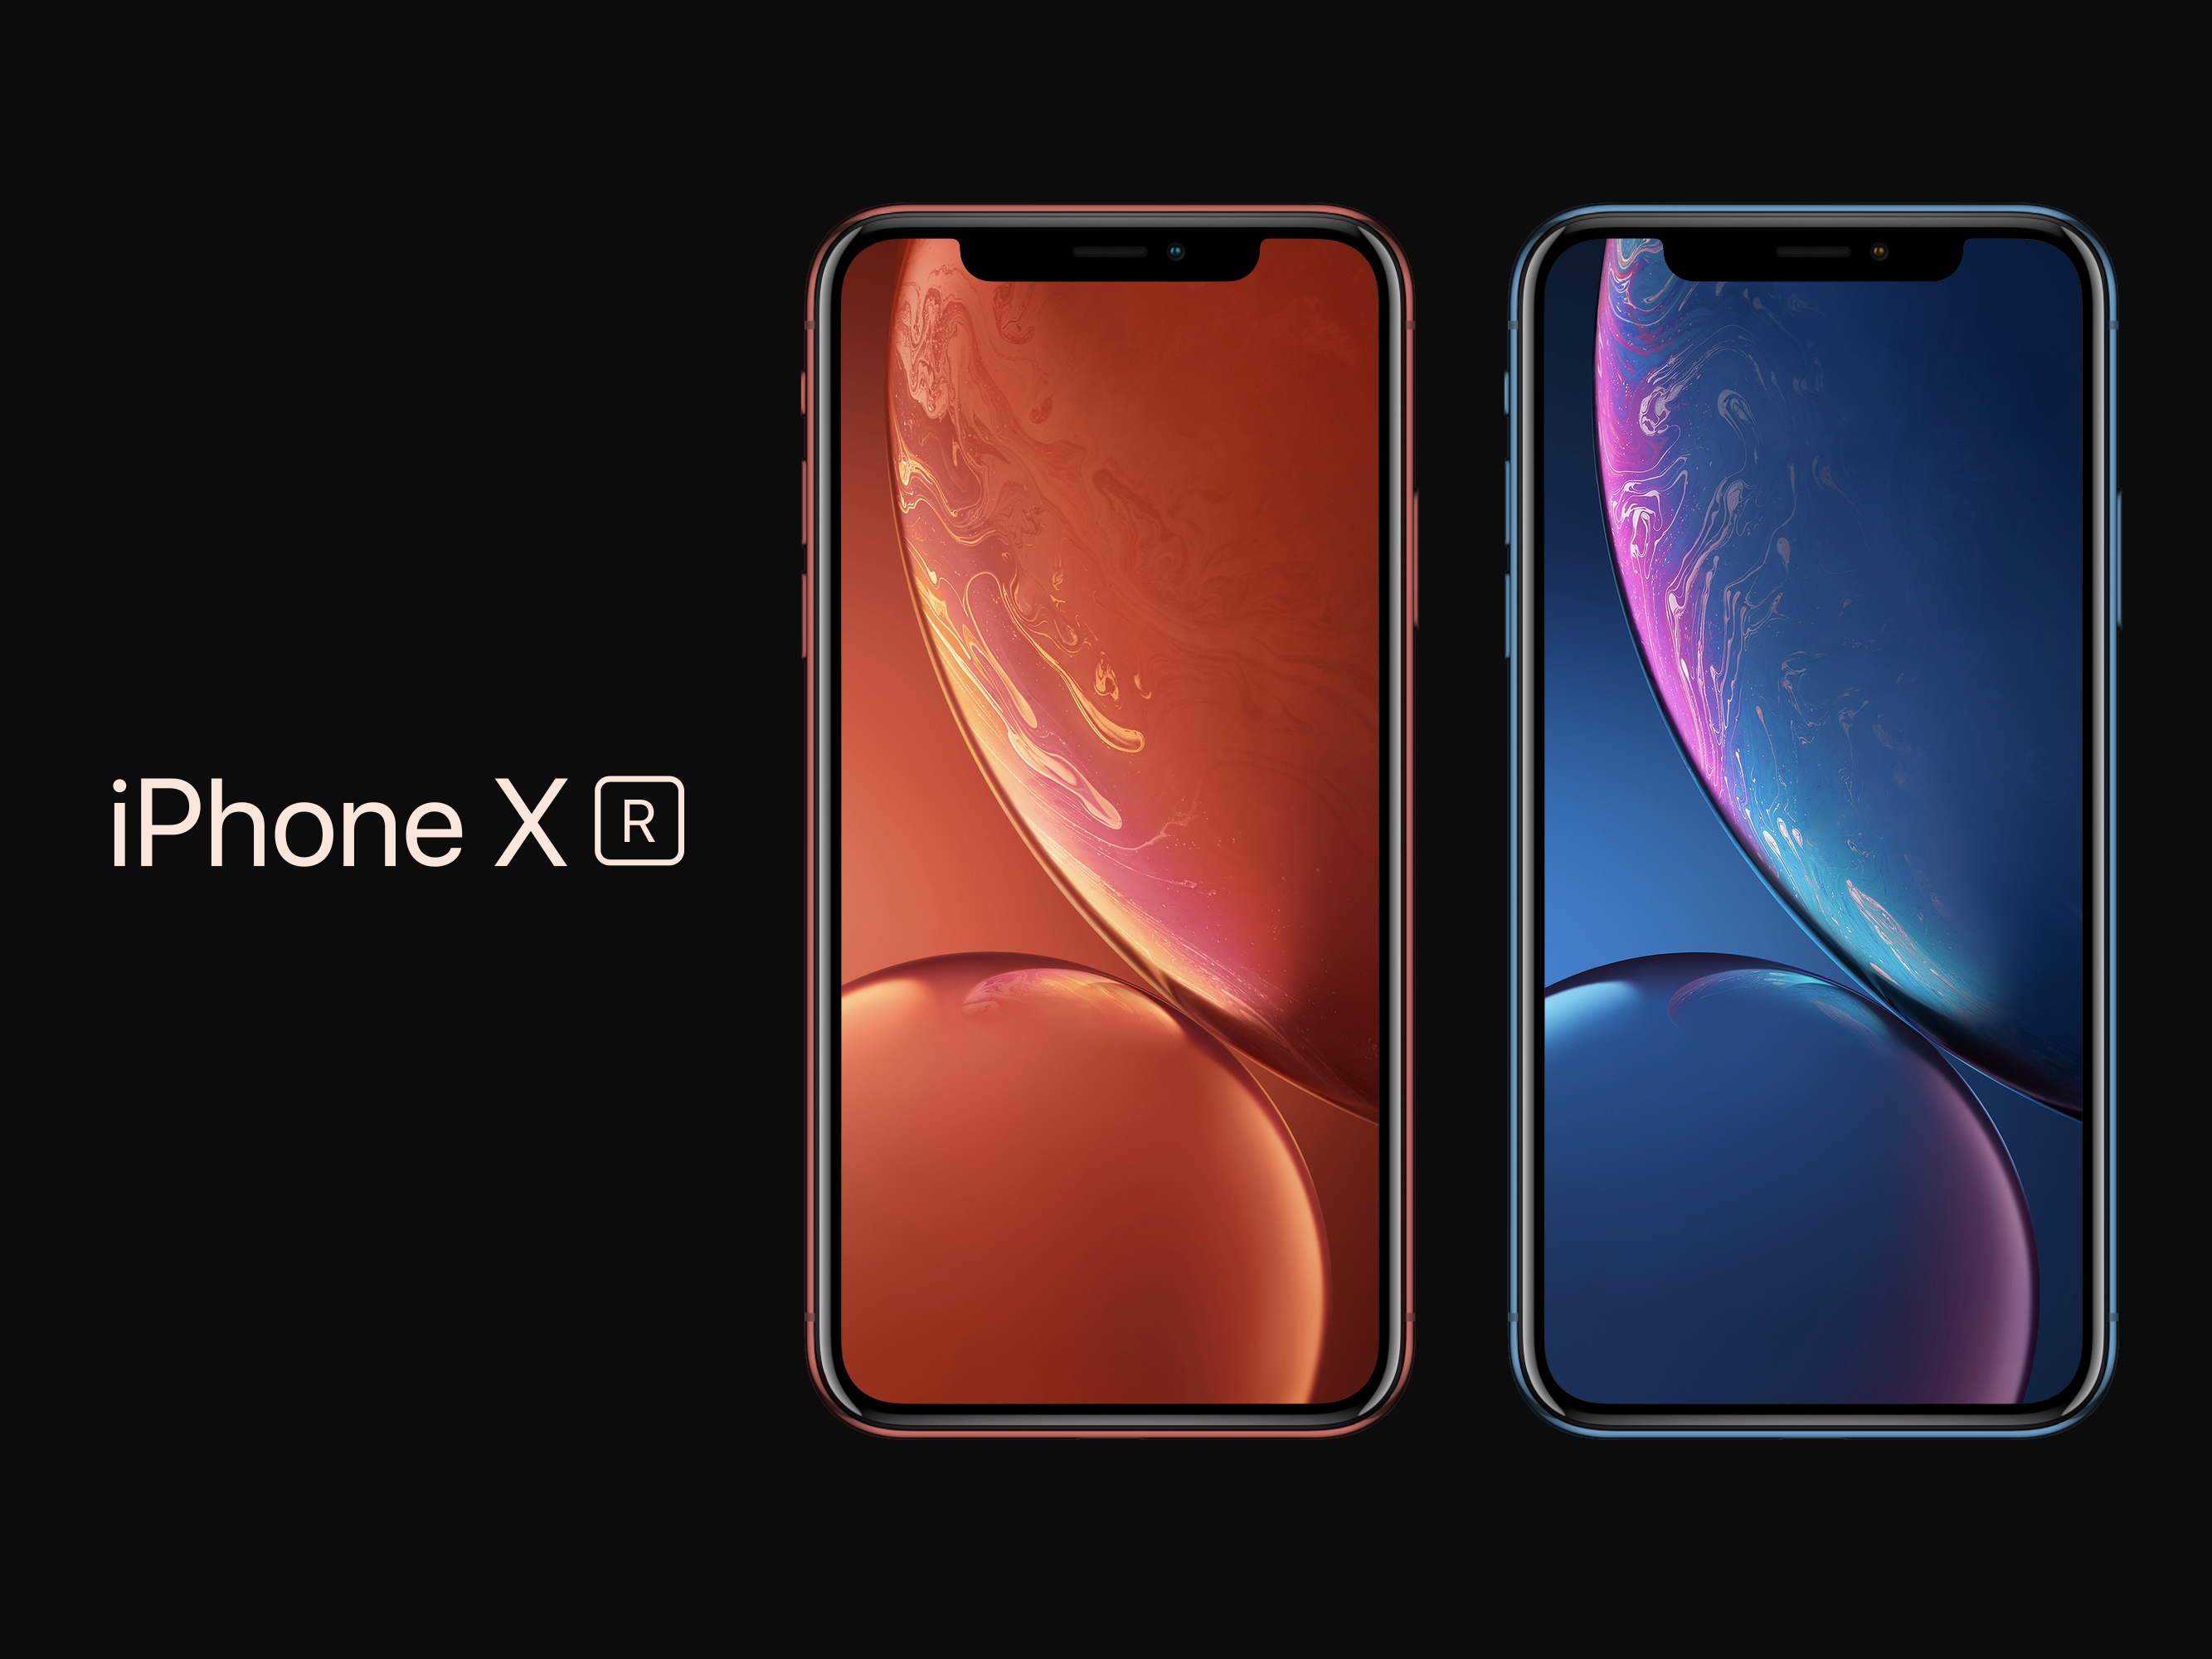 Shocking revelation about iPhone XR's screen resolution